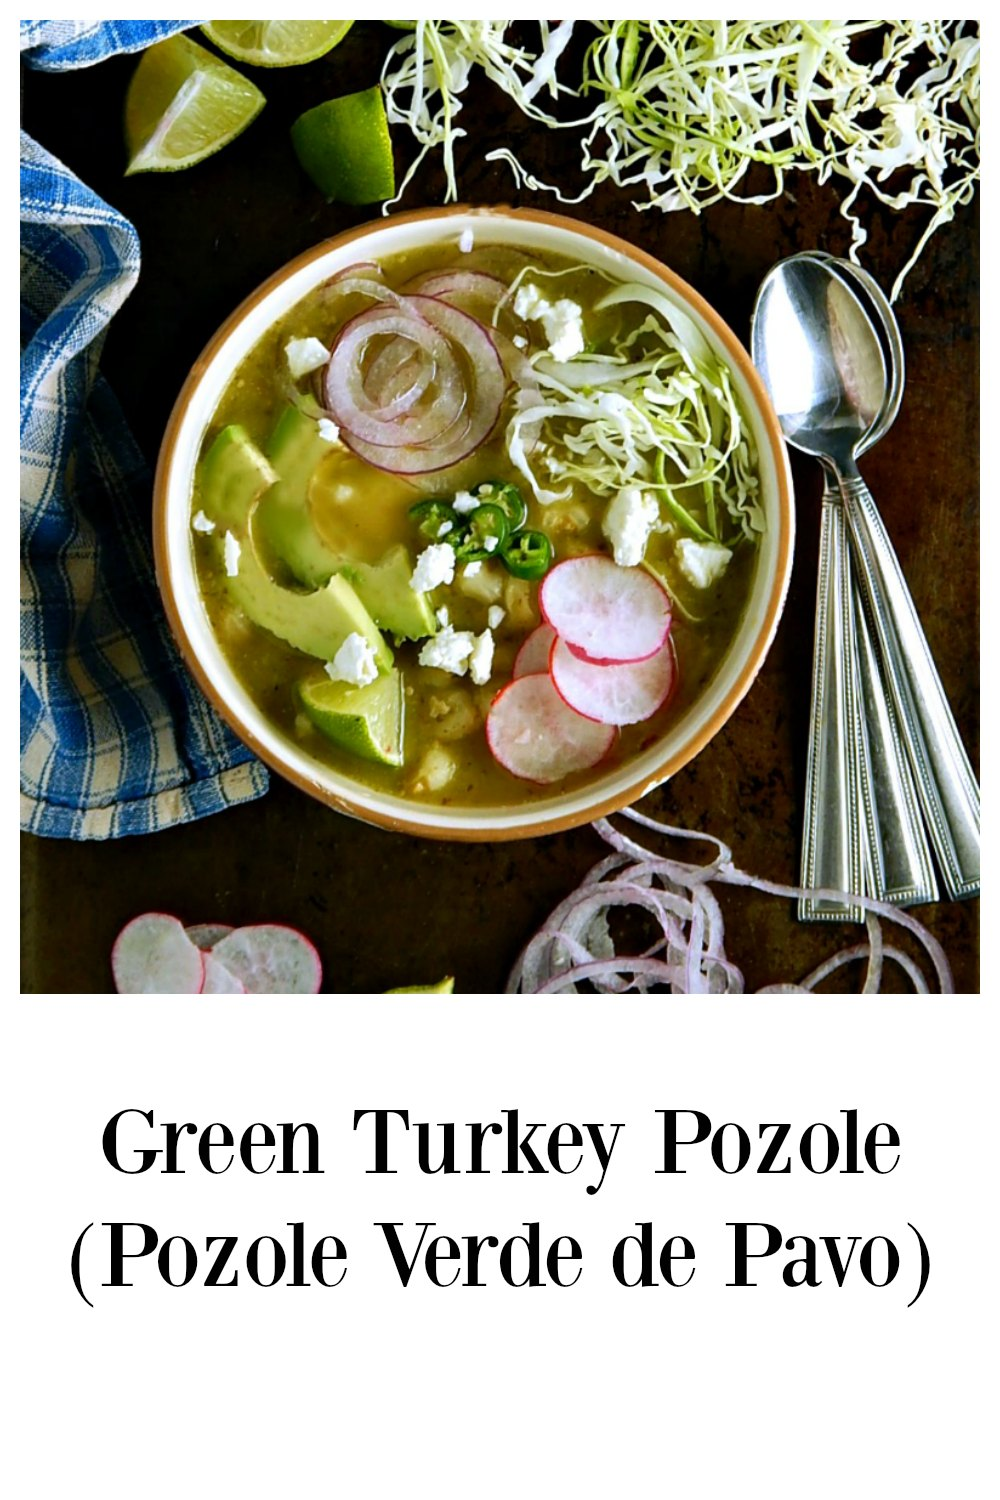 While any Pozole is good, this Green Turkey Pozole (Pozole Verde de Pavo) is really something special - and it's great made with leftover turkey! #GreenPozole #GreenTurkeyPozole #PozoleVerdeDePavo